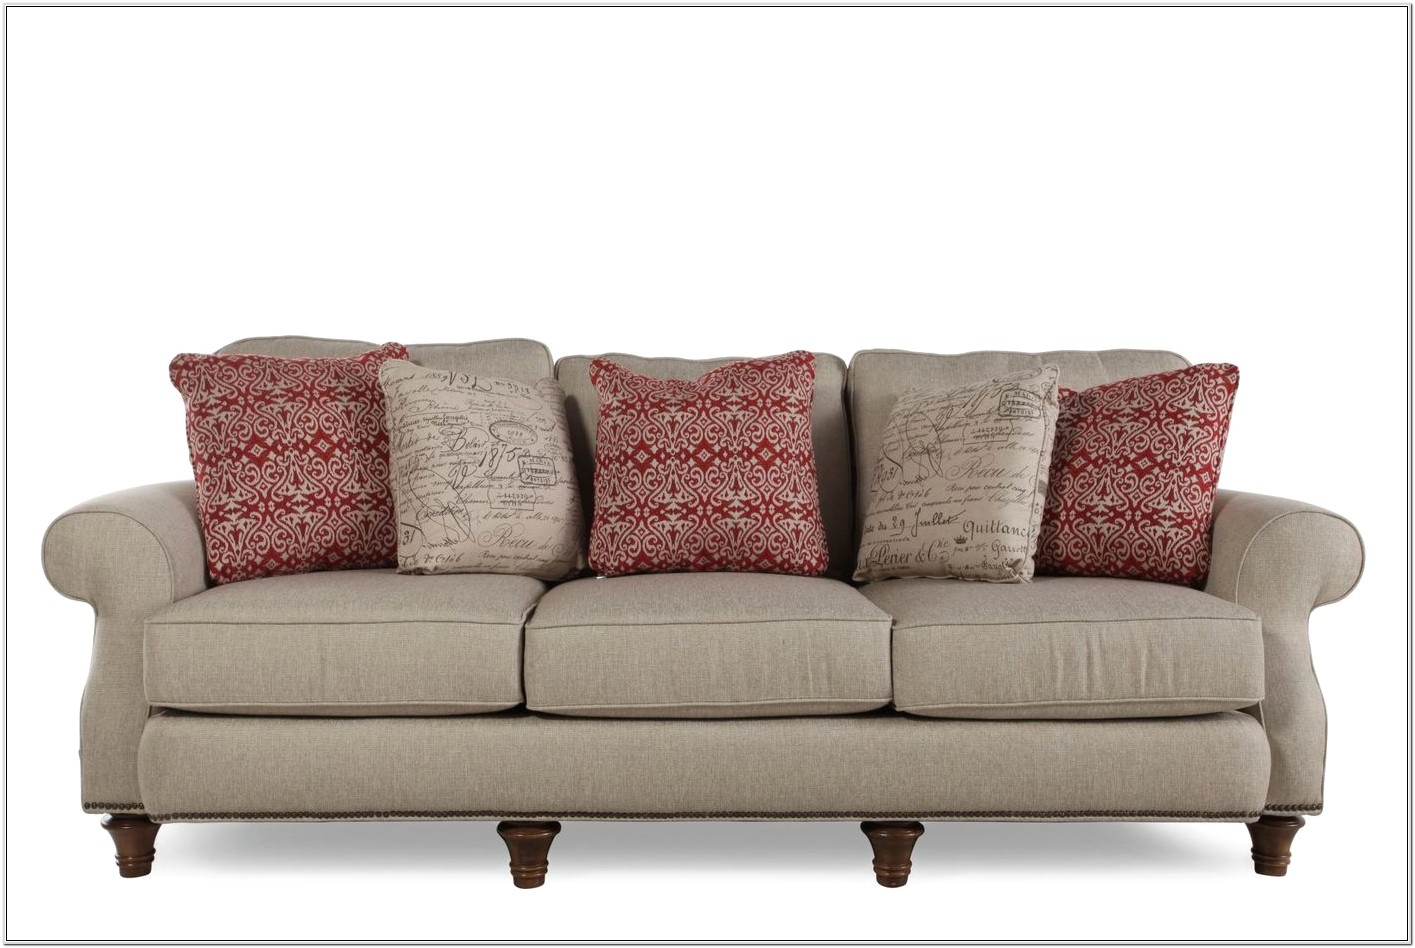 Broyhill Whitfield Living Room Set